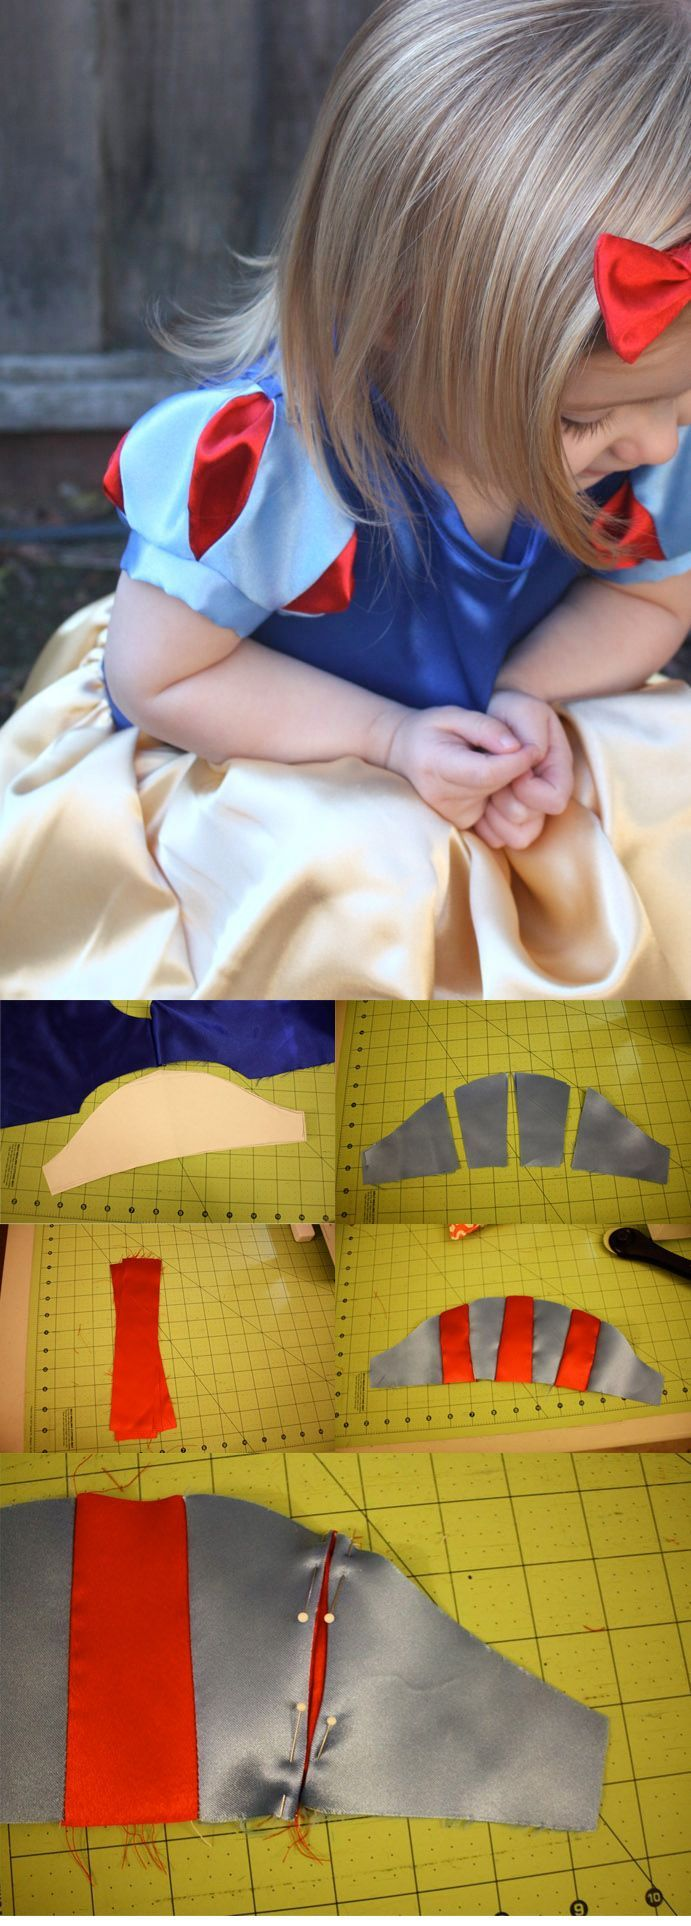 Sewing : SNOW WHITE SLEEVES TUTORIAL ( http://www.craftinessisnotoptional.com/2010/11/snow-white-sleeves-tutorial.html )